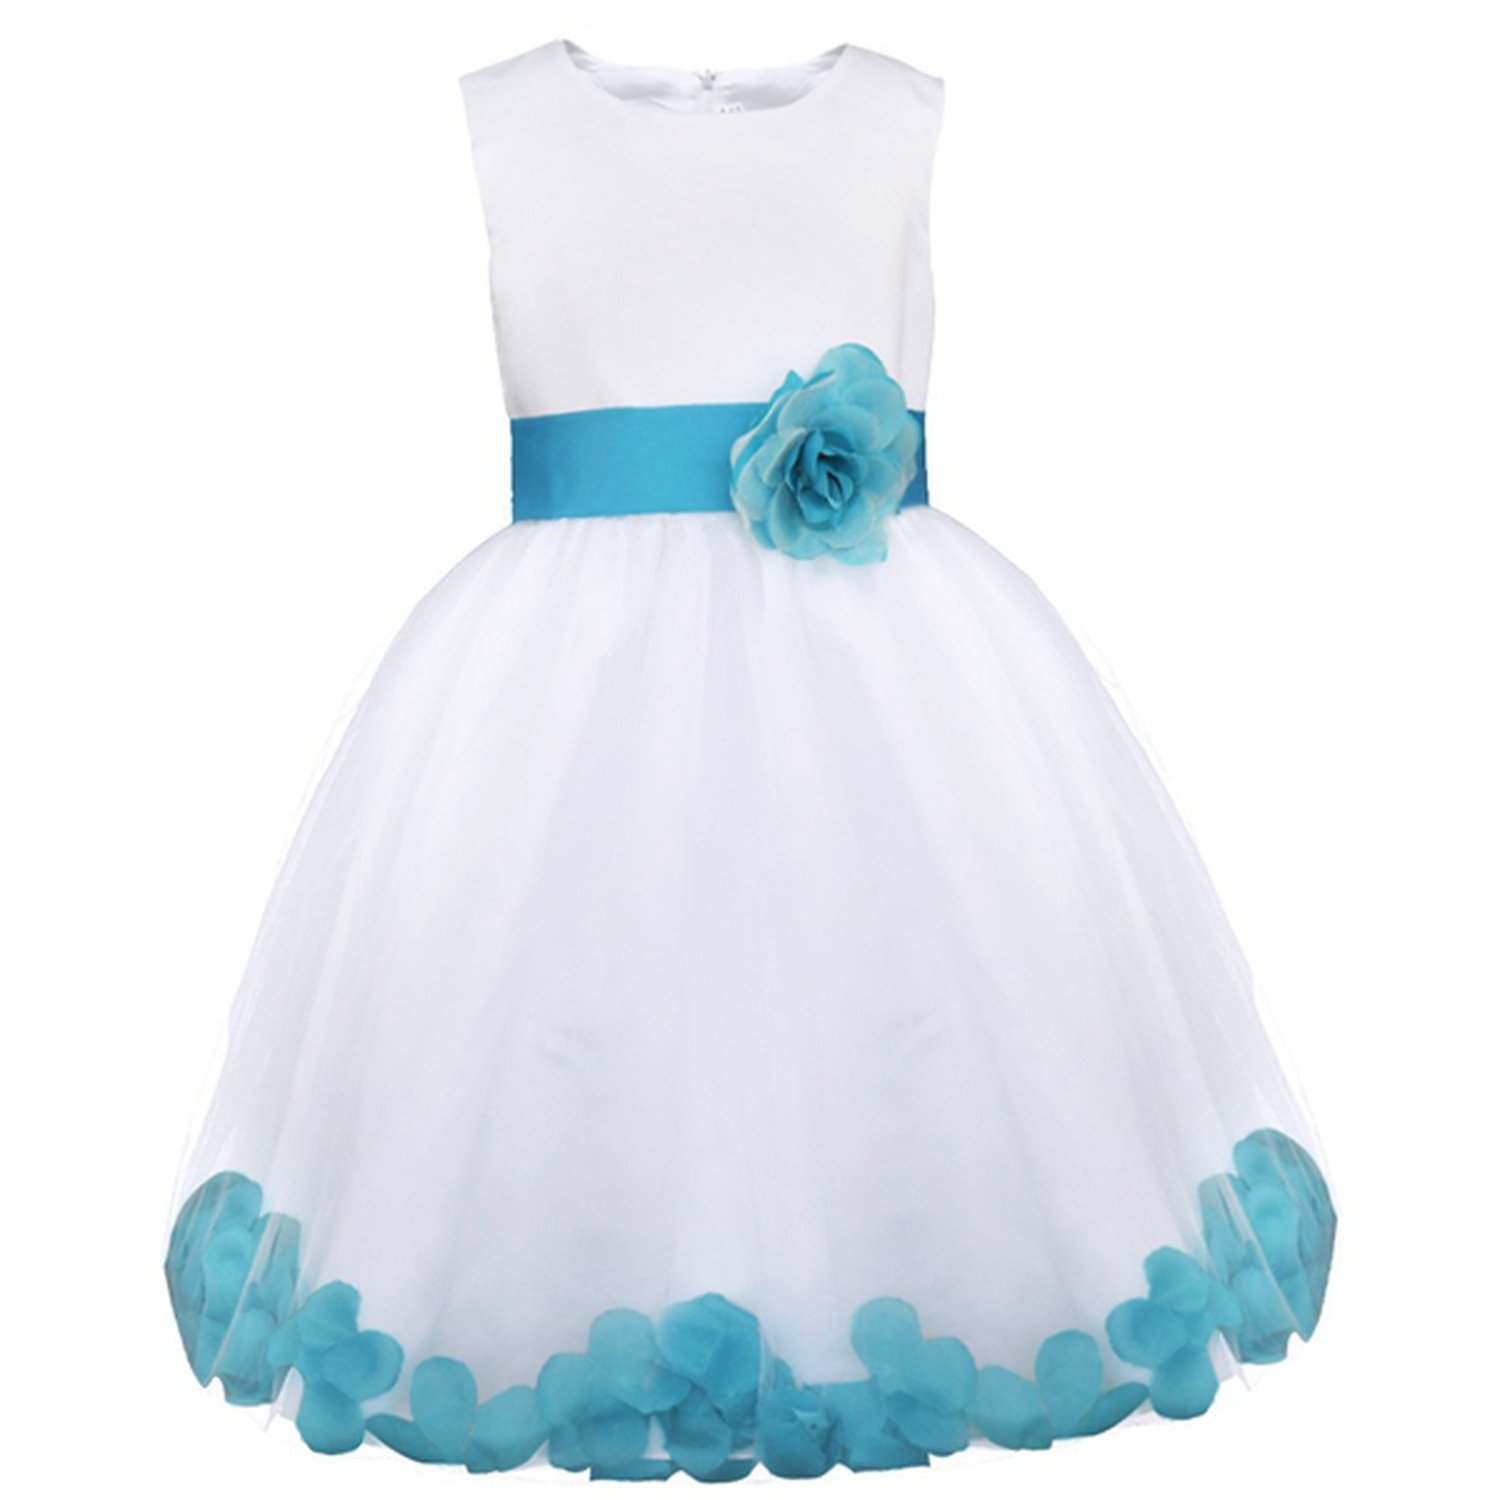 Toping Fine girl dress Flower Petals Girls Bridesmaid Elegant Princess Girls Pageant Prom Gown Dress,Sky Blue,Child-5